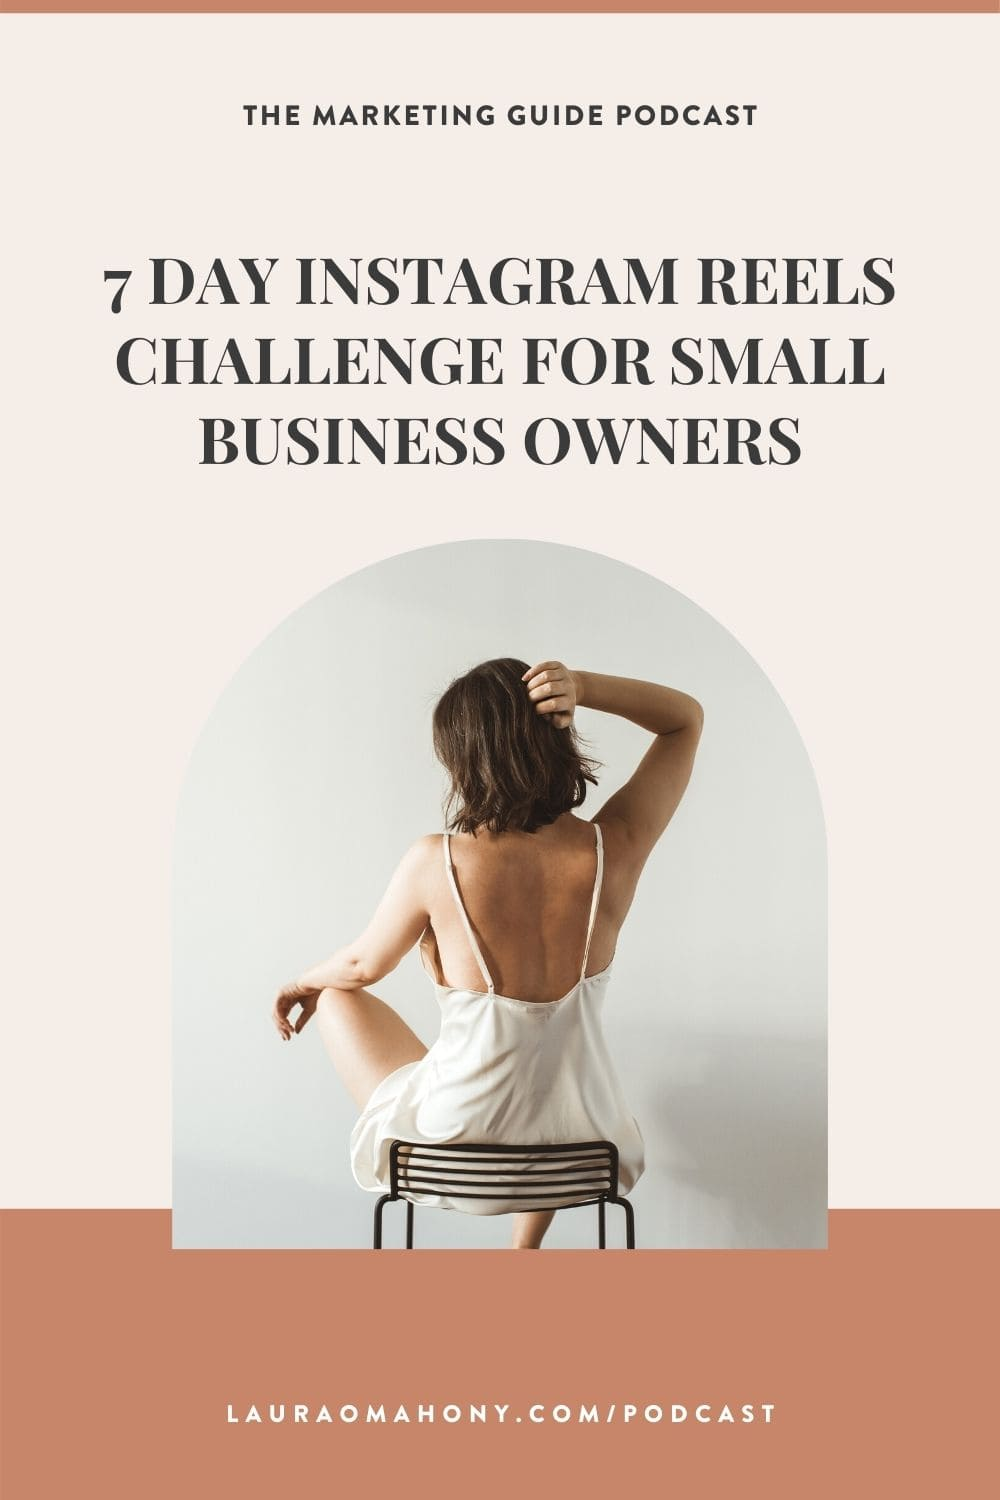 Episode 37 The Marketing Guide 7 Day Instagram Reels Challenge for Small Business Owners